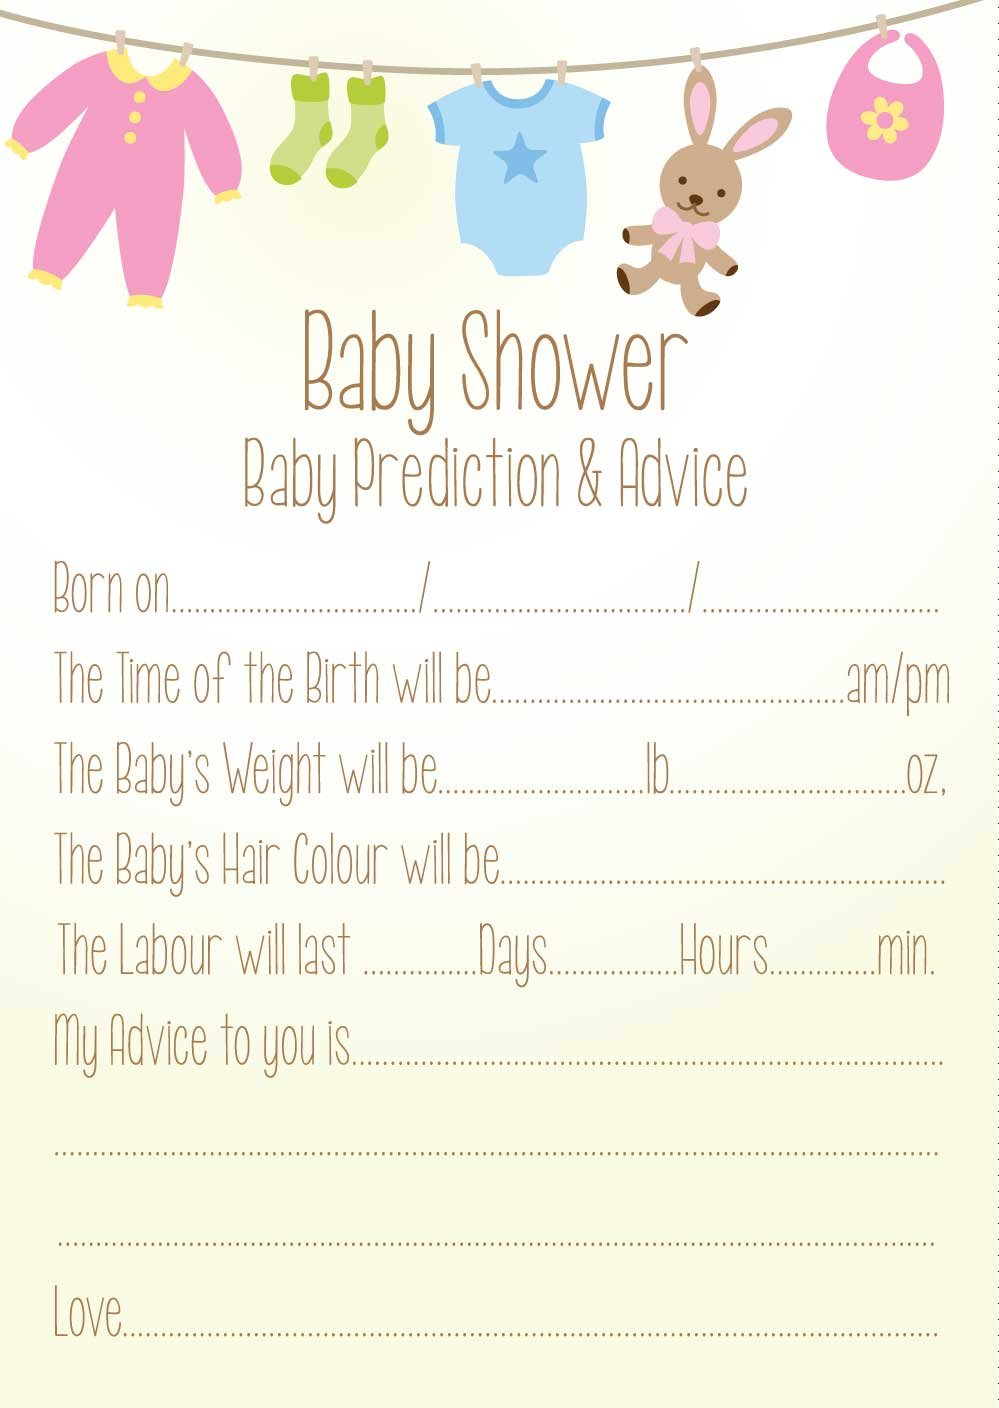 30  Ideas To Help You Write Quality Baby Shower Card Messages furthermore DUFFYCARDS     Thank You Cards likewise Themes   What To Write In A Baby Shower Card For Girl In besides  additionally Baby Shower Cards Invitations   Kawaiitheo also funny baby shower messages parents besides Best 25  Baby shower invitation wording ideas on Pinterest moreover Best 25  Baby shower advice ideas on Pinterest   Mommy advice baby additionally what to write in a baby shower card   Fieldstation co besides Breathtaking Things To Say On A Baby Shower Card 15 For Baby also Baby Shower Wishes   Baby Shower Messages for Greeting Cards. on latest what to write in baby shower card